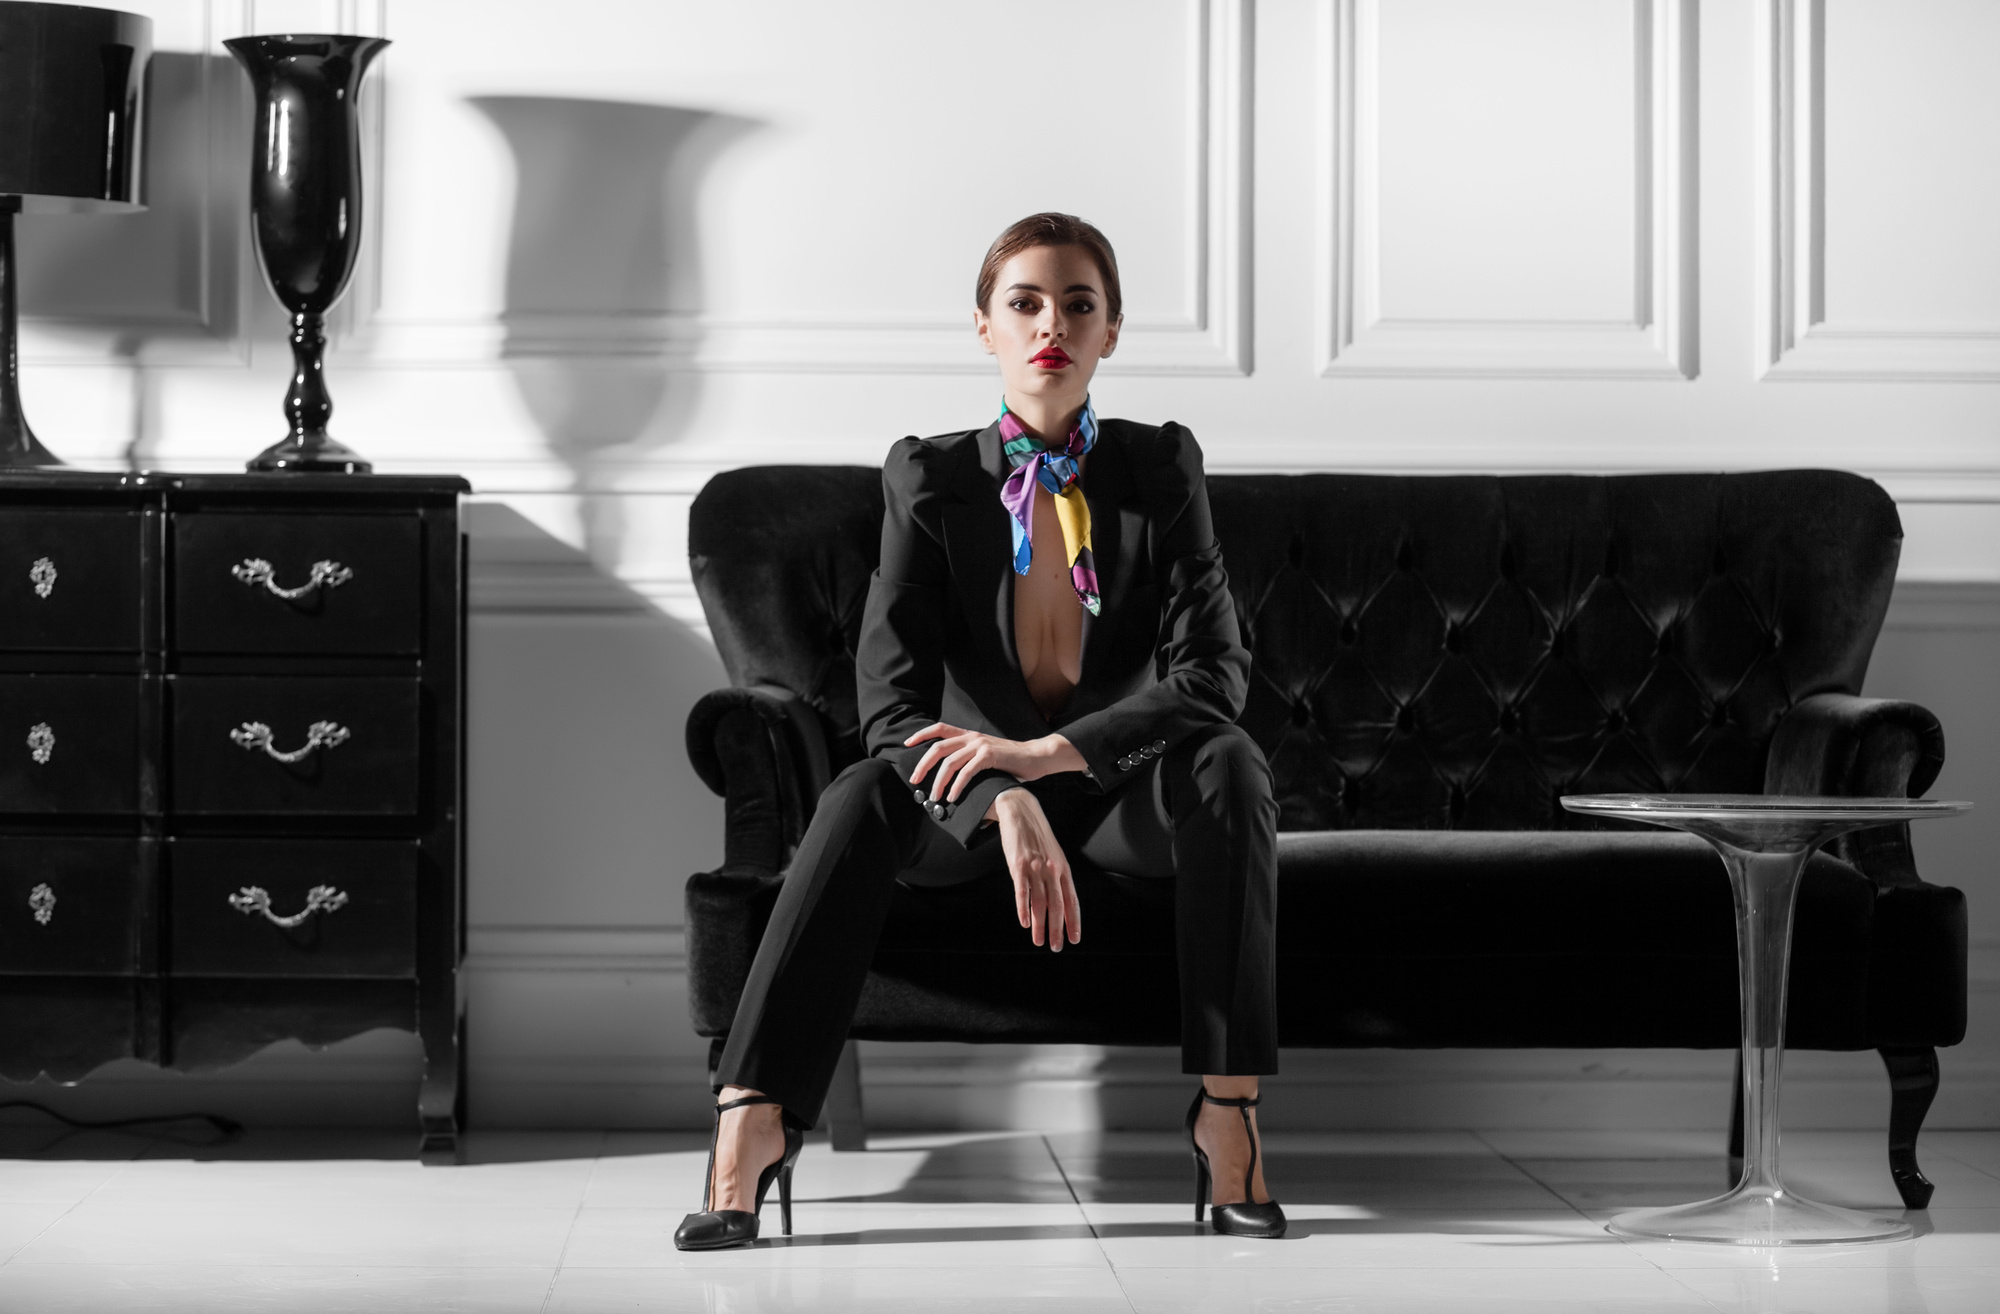 Woman sitting in a sofa wearing a stylish outfit in black